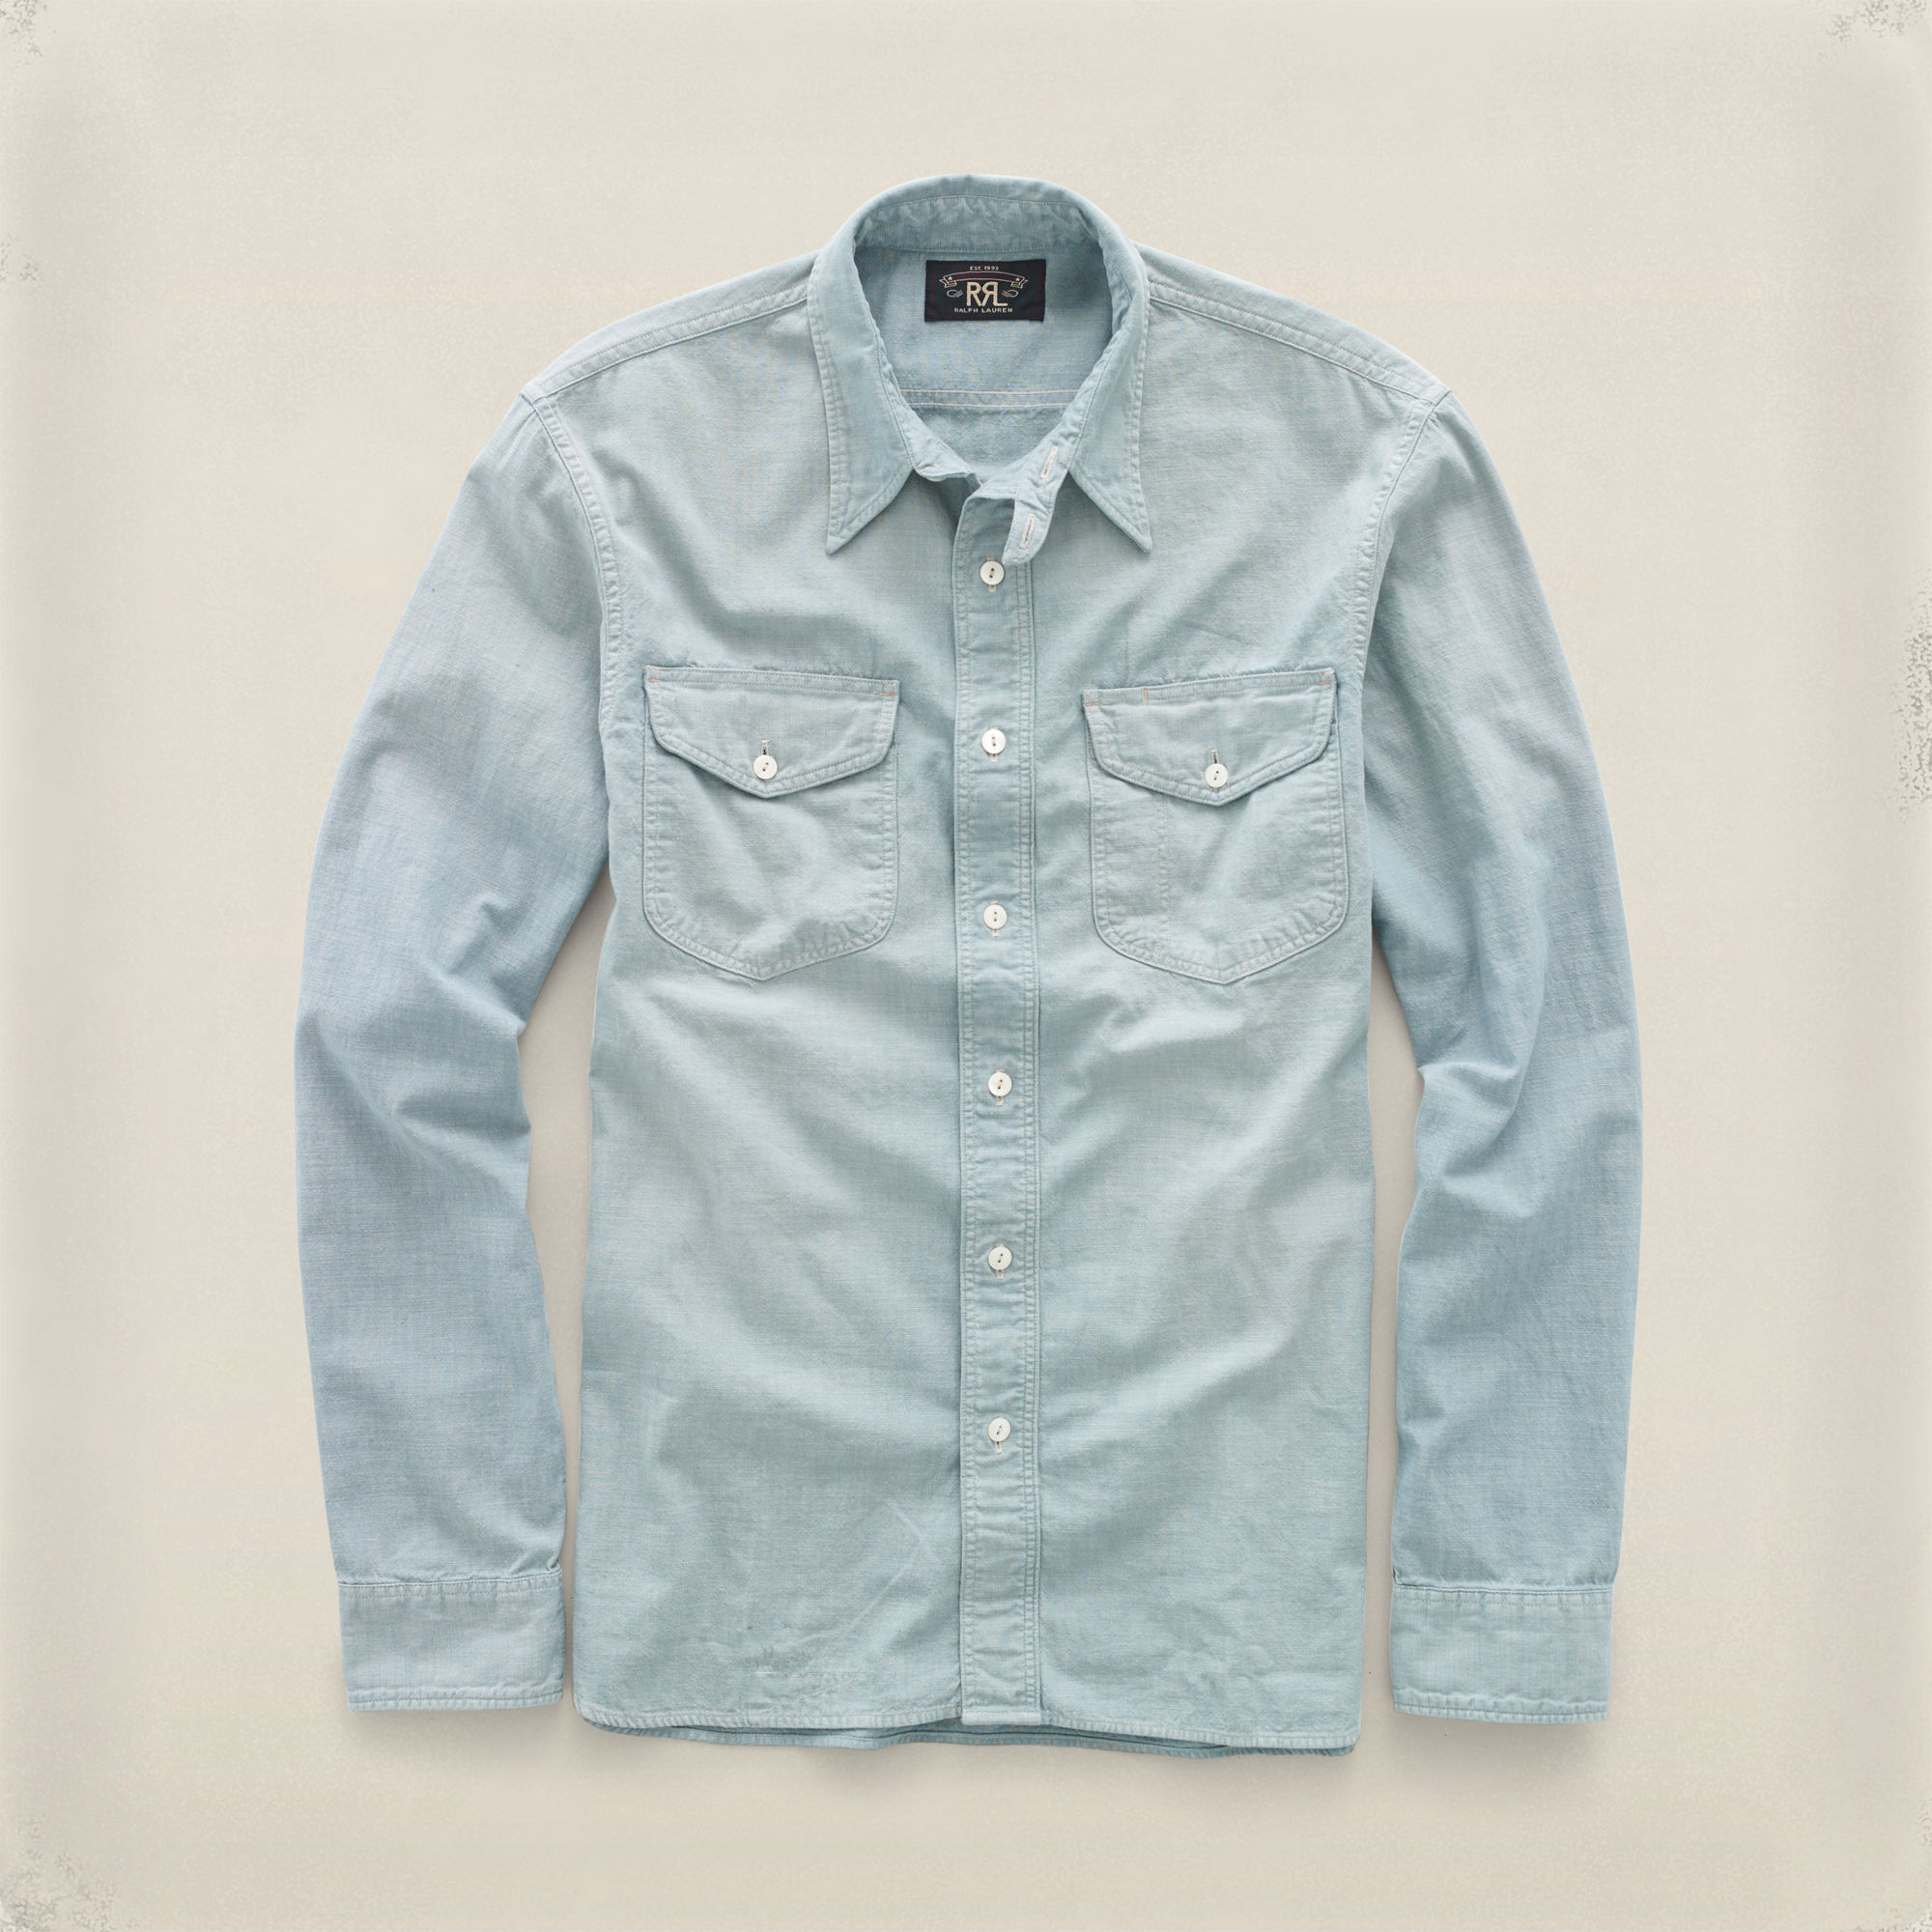 Rrl Cotton Chambray Workshirt In Blue For Men Lyst